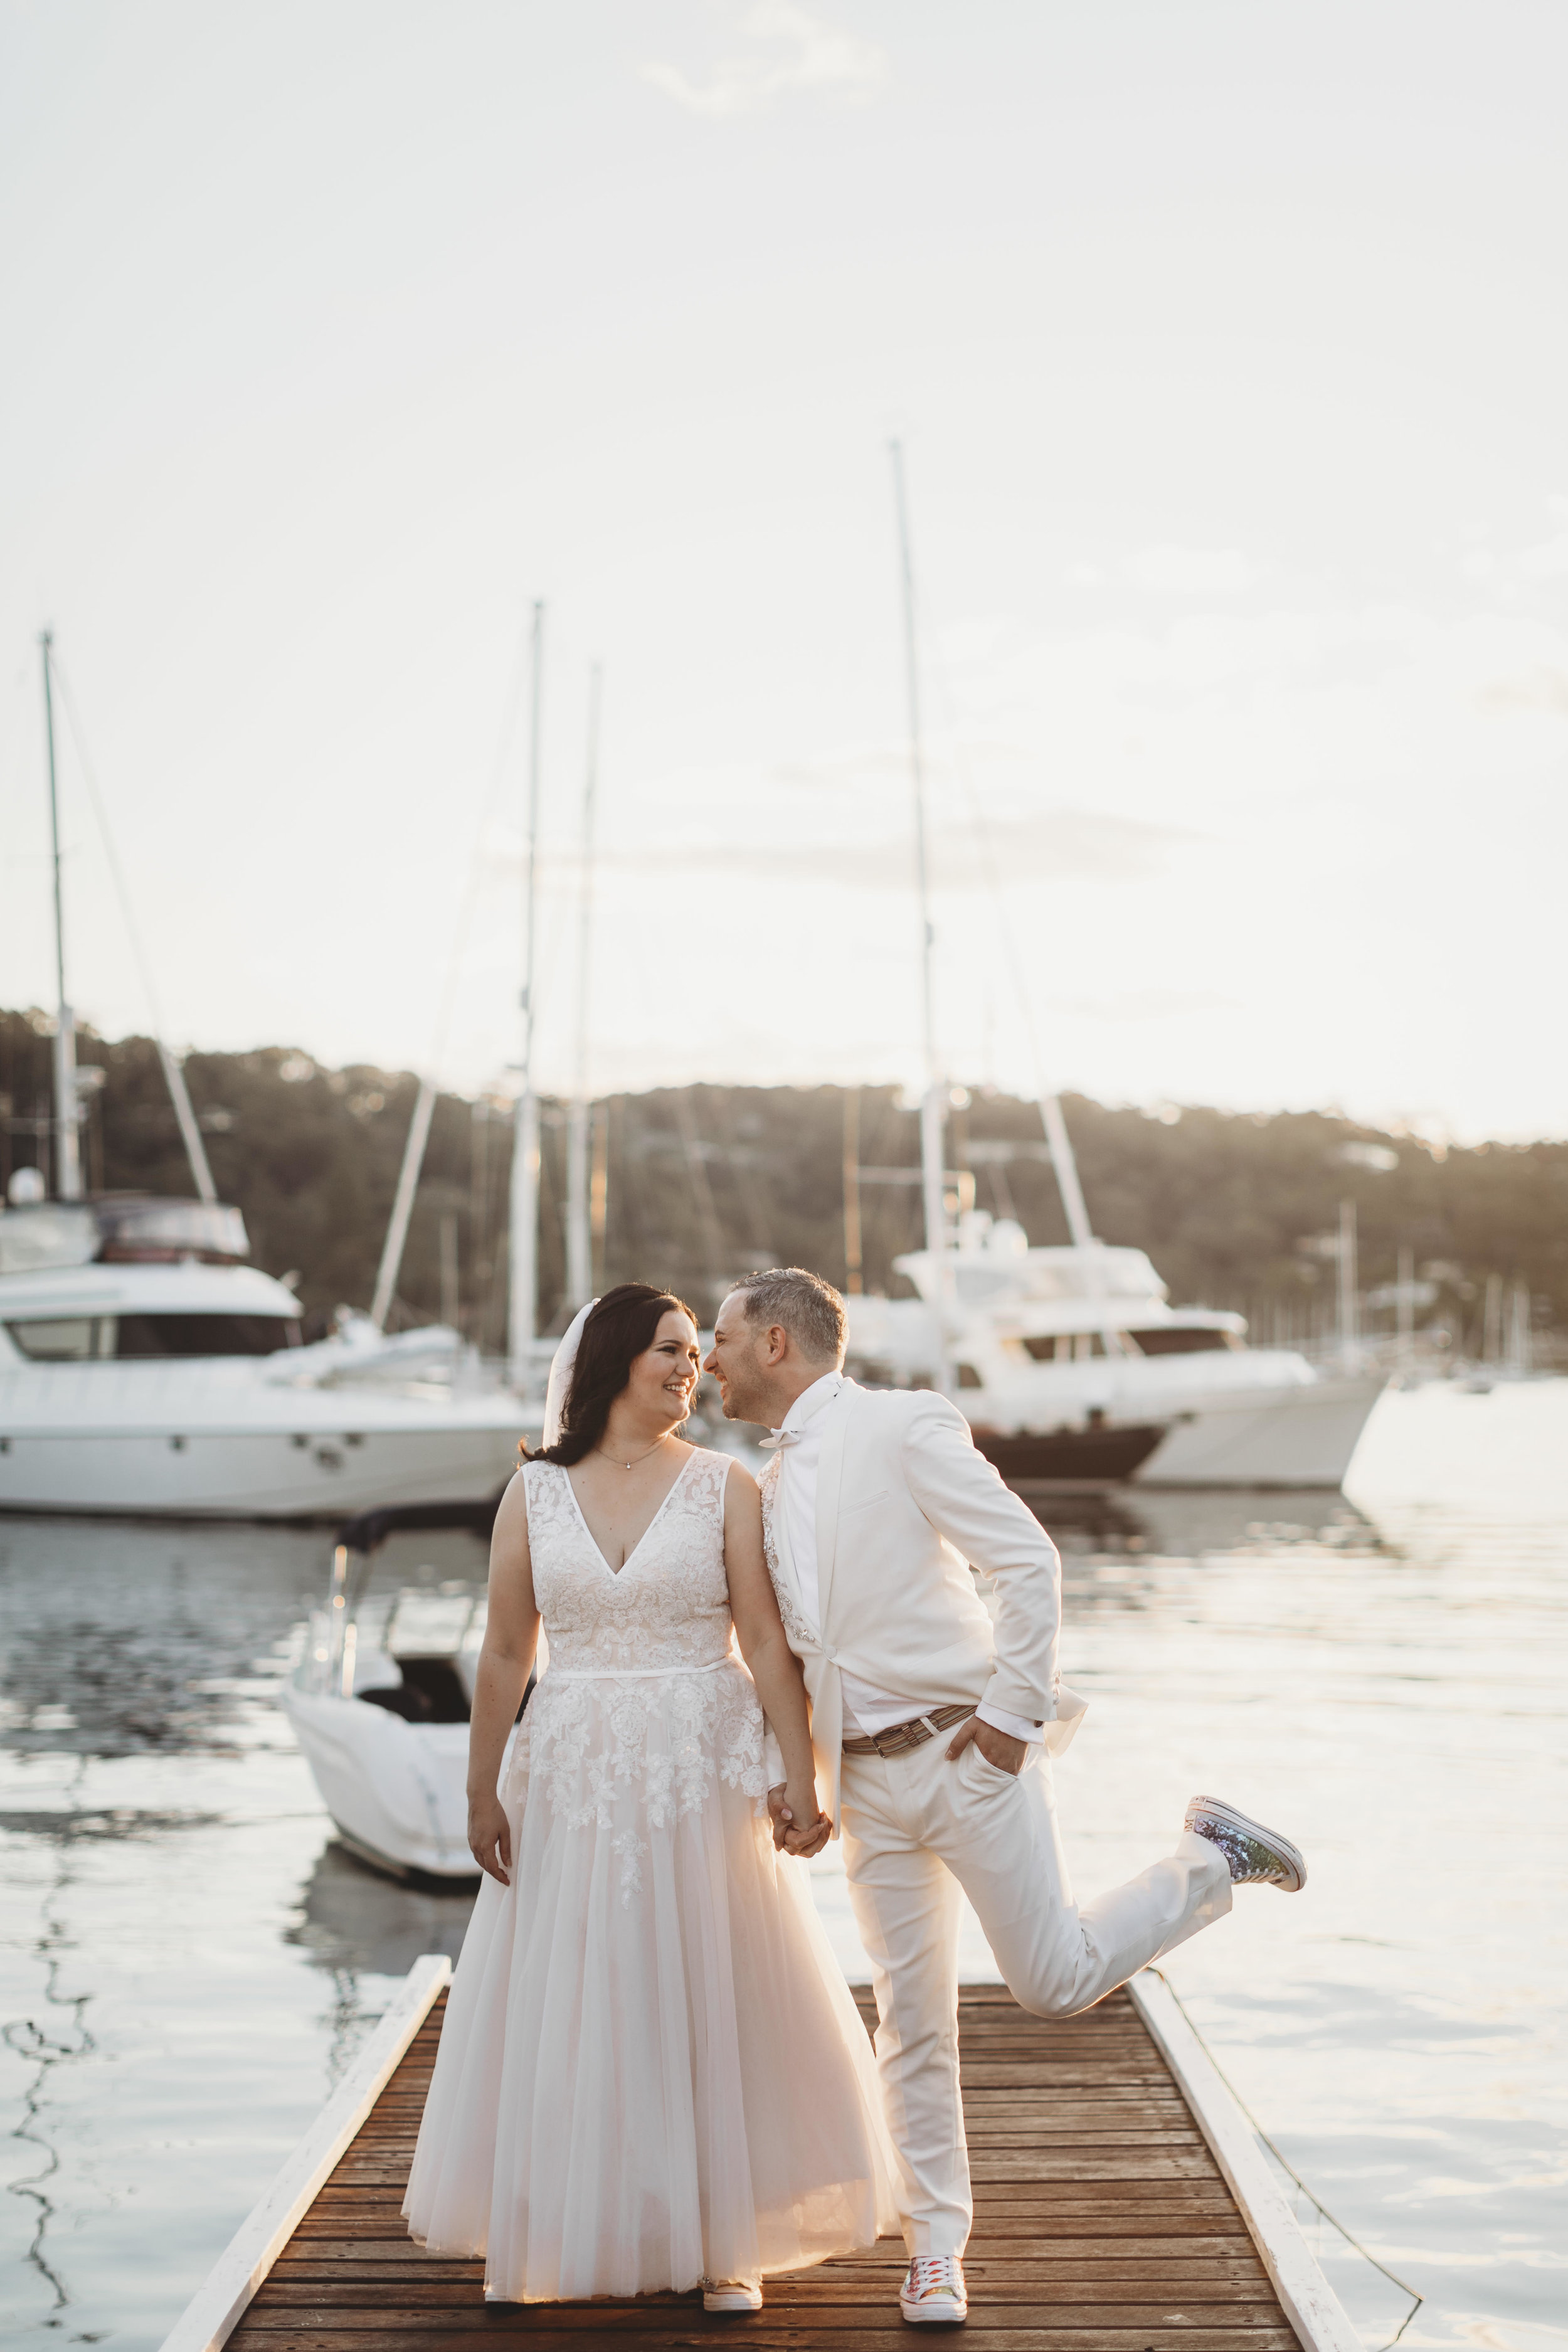 belinda + nick - and their untraditional celebration